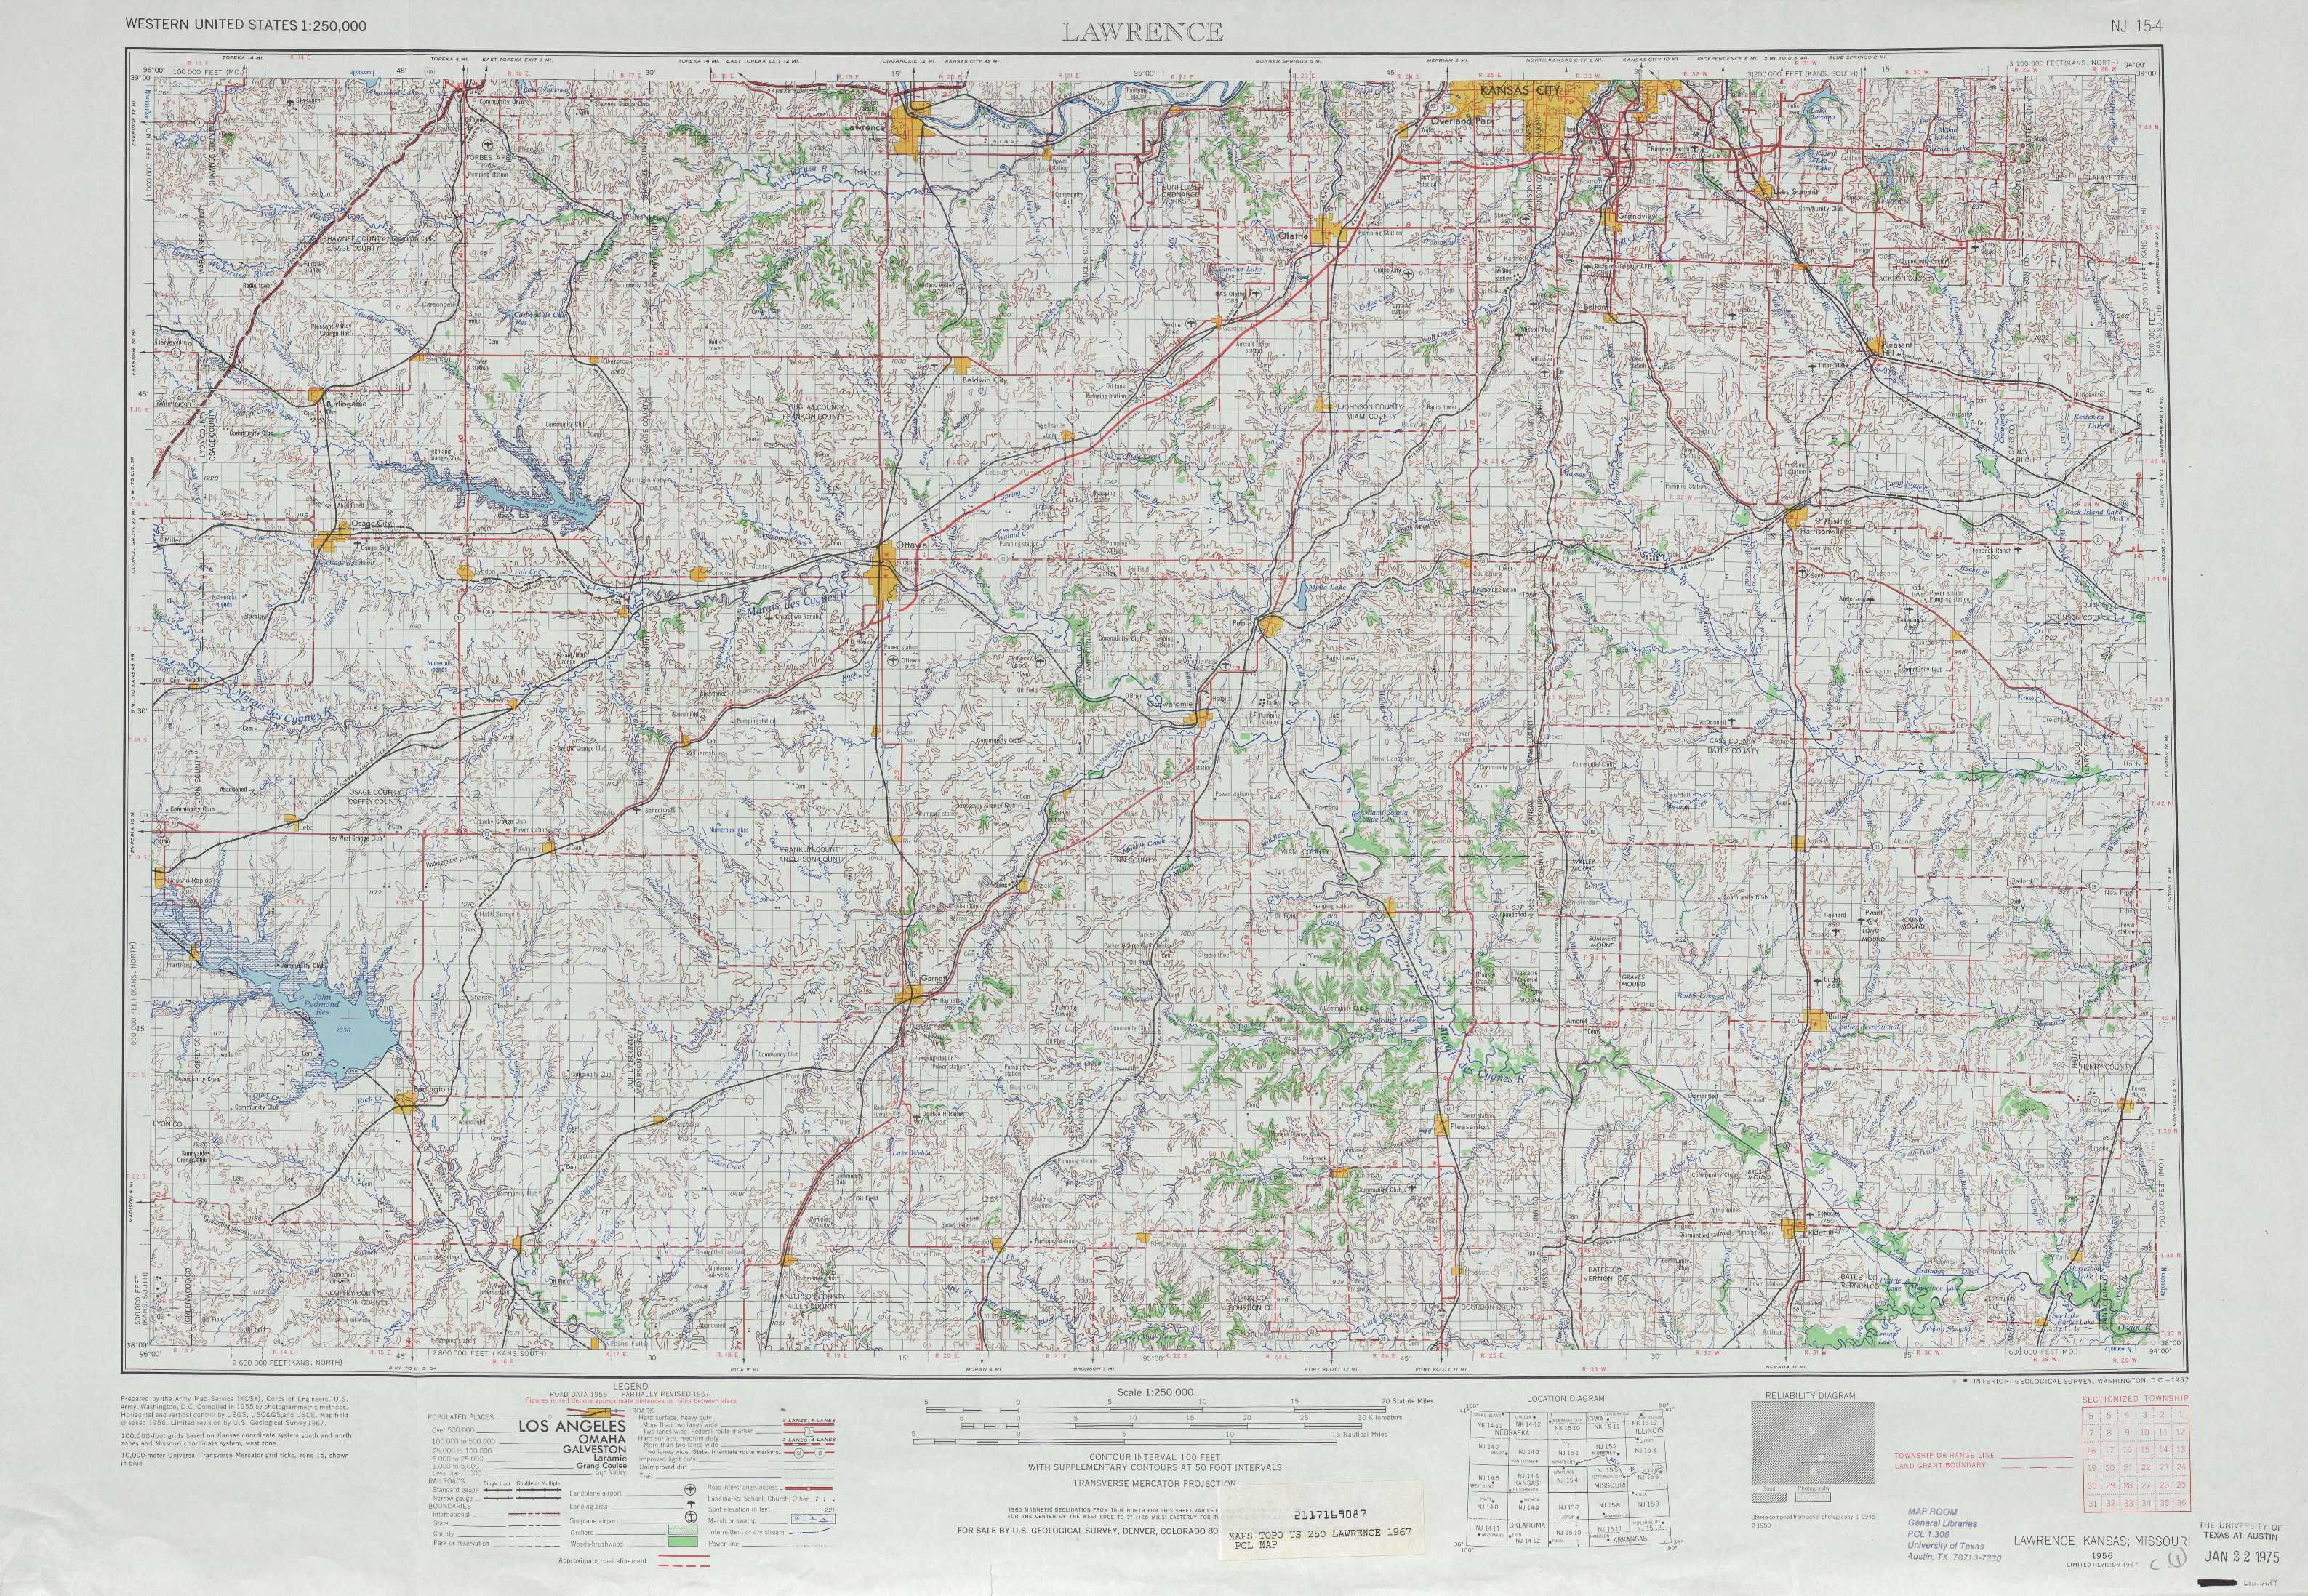 oklahoma state road map with 38094a1 on 38094a1 besides Missouri further Louisiana River Map furthermore Two Exits Too Far moreover Ftzlist Map.